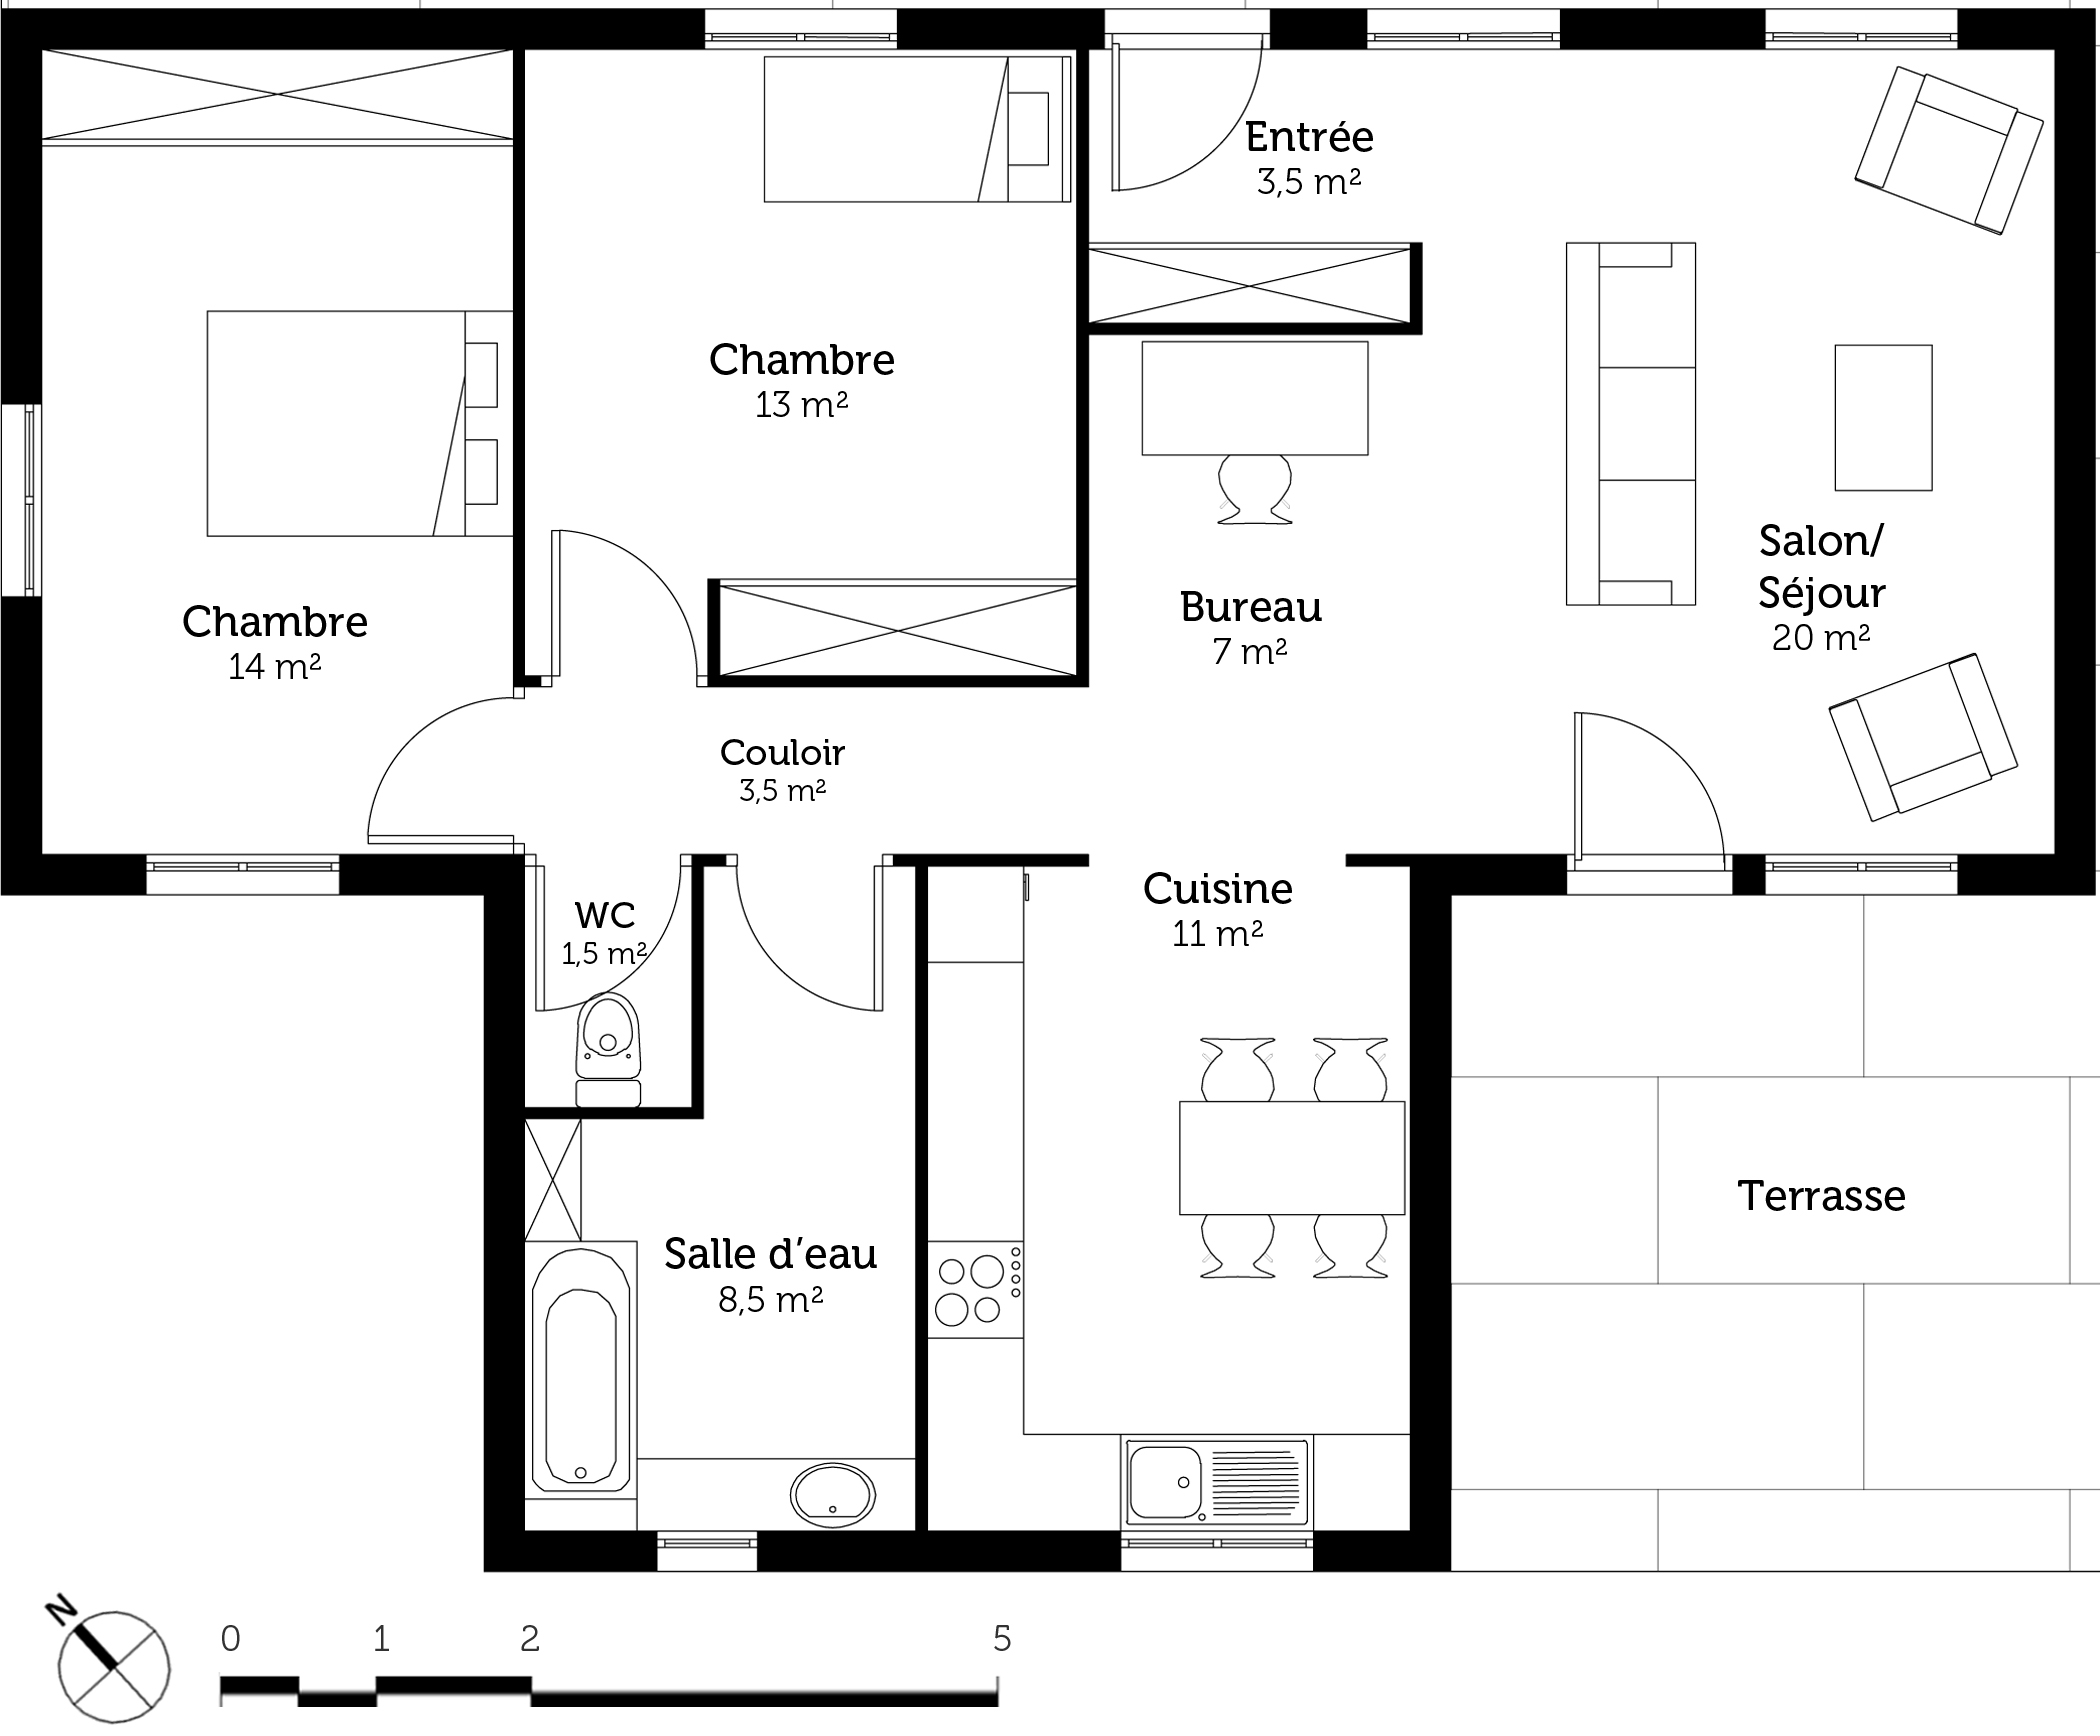 Plan maison de plain pied toit plat ooreka for Plan maison contemporaine plain pied toit plat